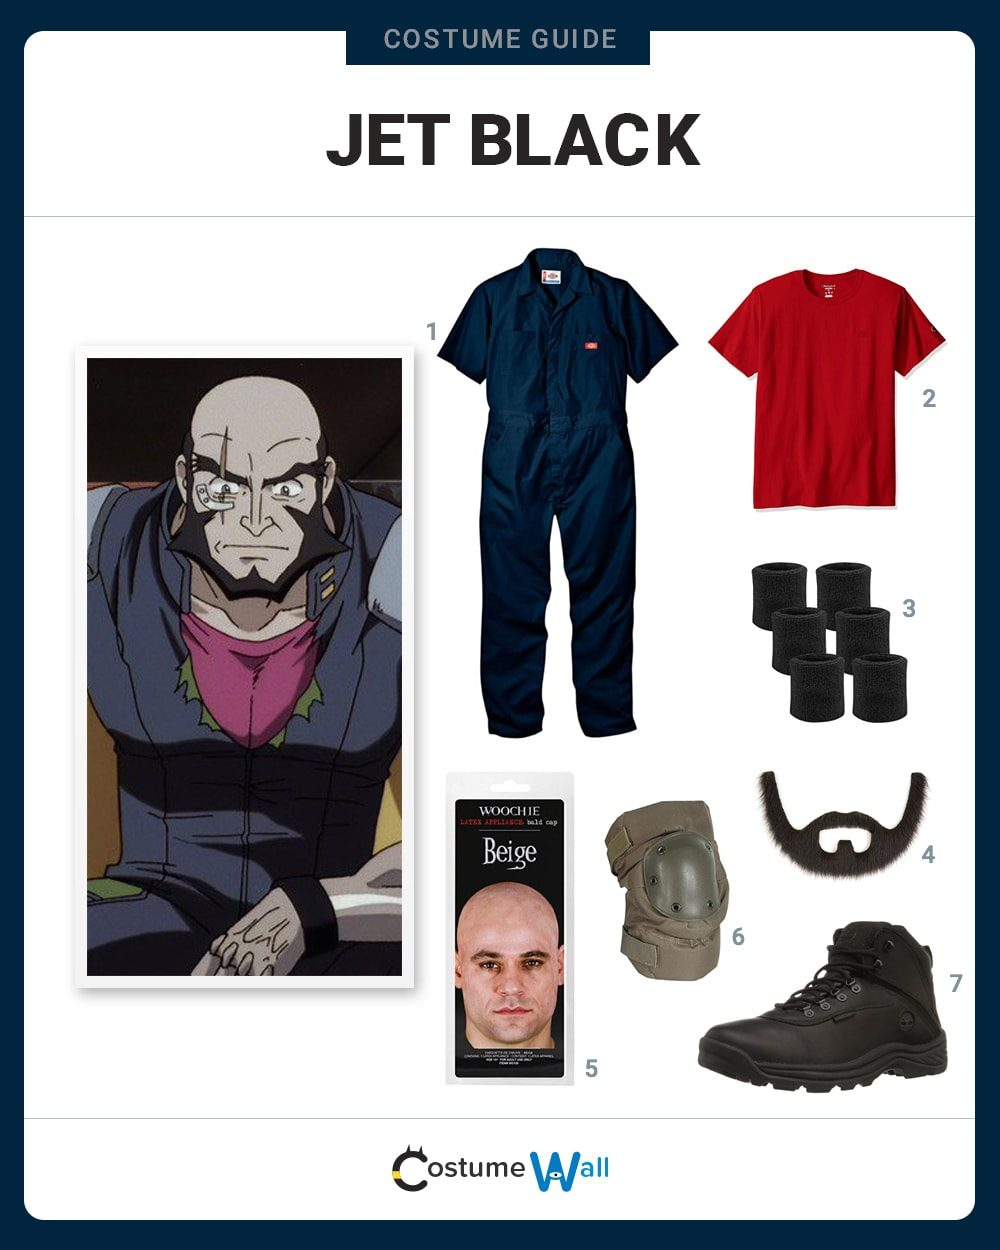 Jet Black Costume Guide